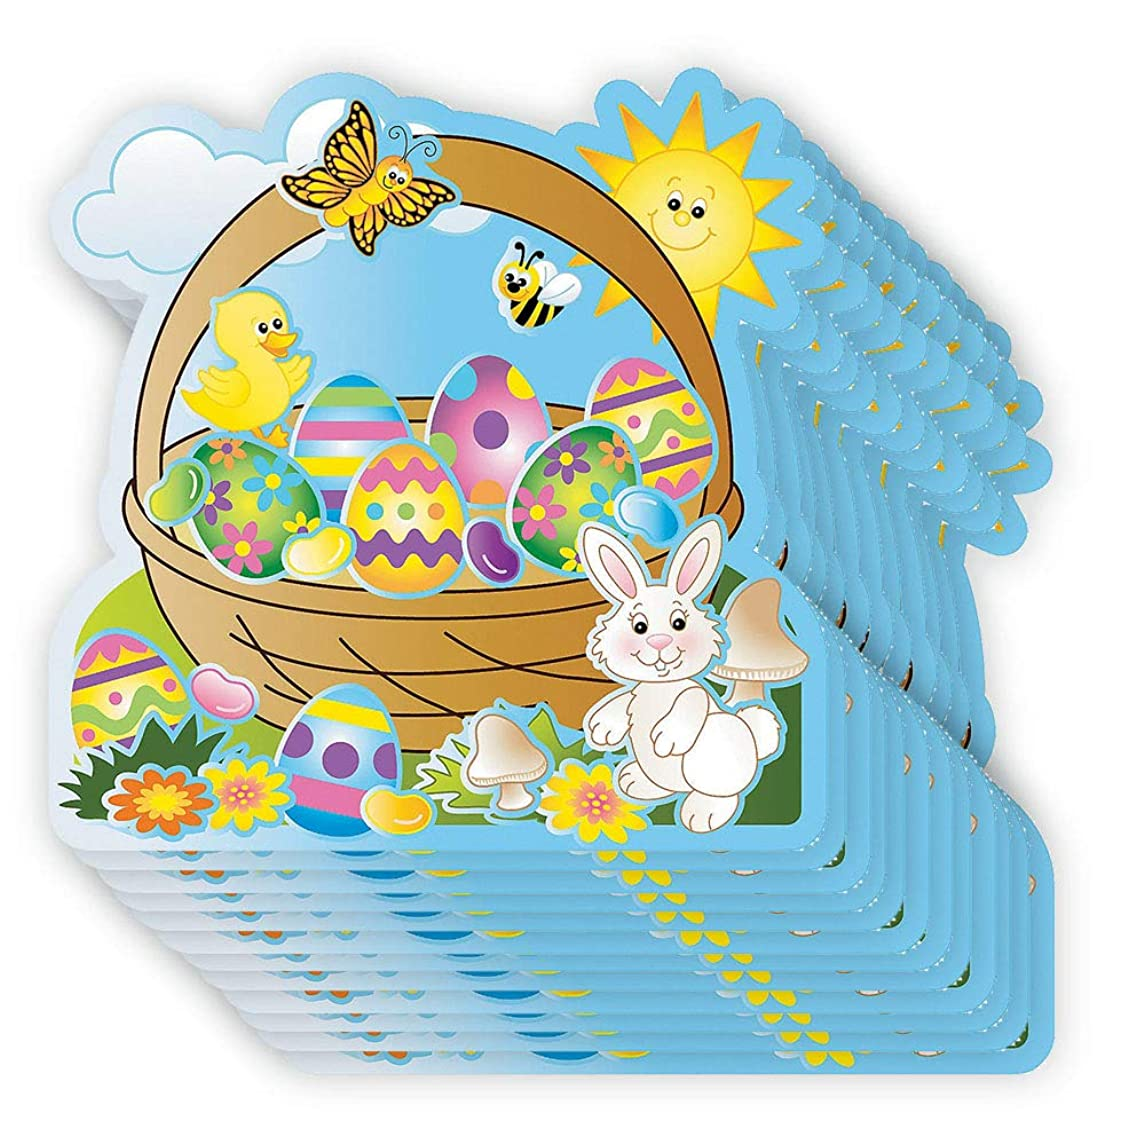 Make Your Own Sticker - Pack of 12 Egg-Cellent Make-An-Easter-Basket Sticker Scenes - Perfect for Stress Reliever, Educational Game, Sensory and Tactile Stimulation, DIY, and Event Favor